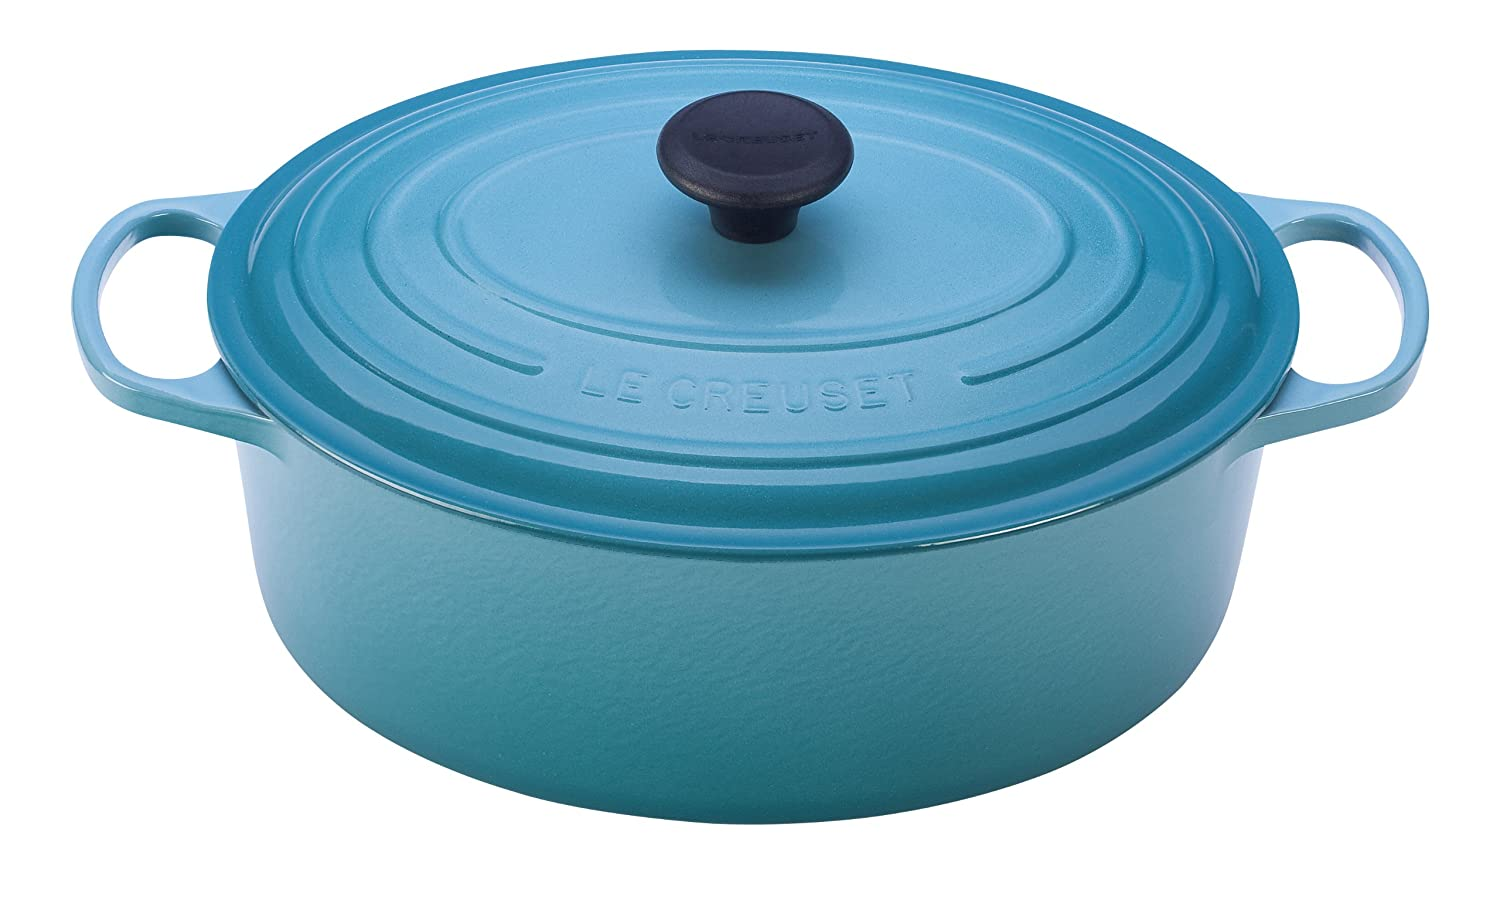 Le Creuset Signature Enameled Cast-Iron 5-Quart Oval French (Dutch) Oven, Caribbean